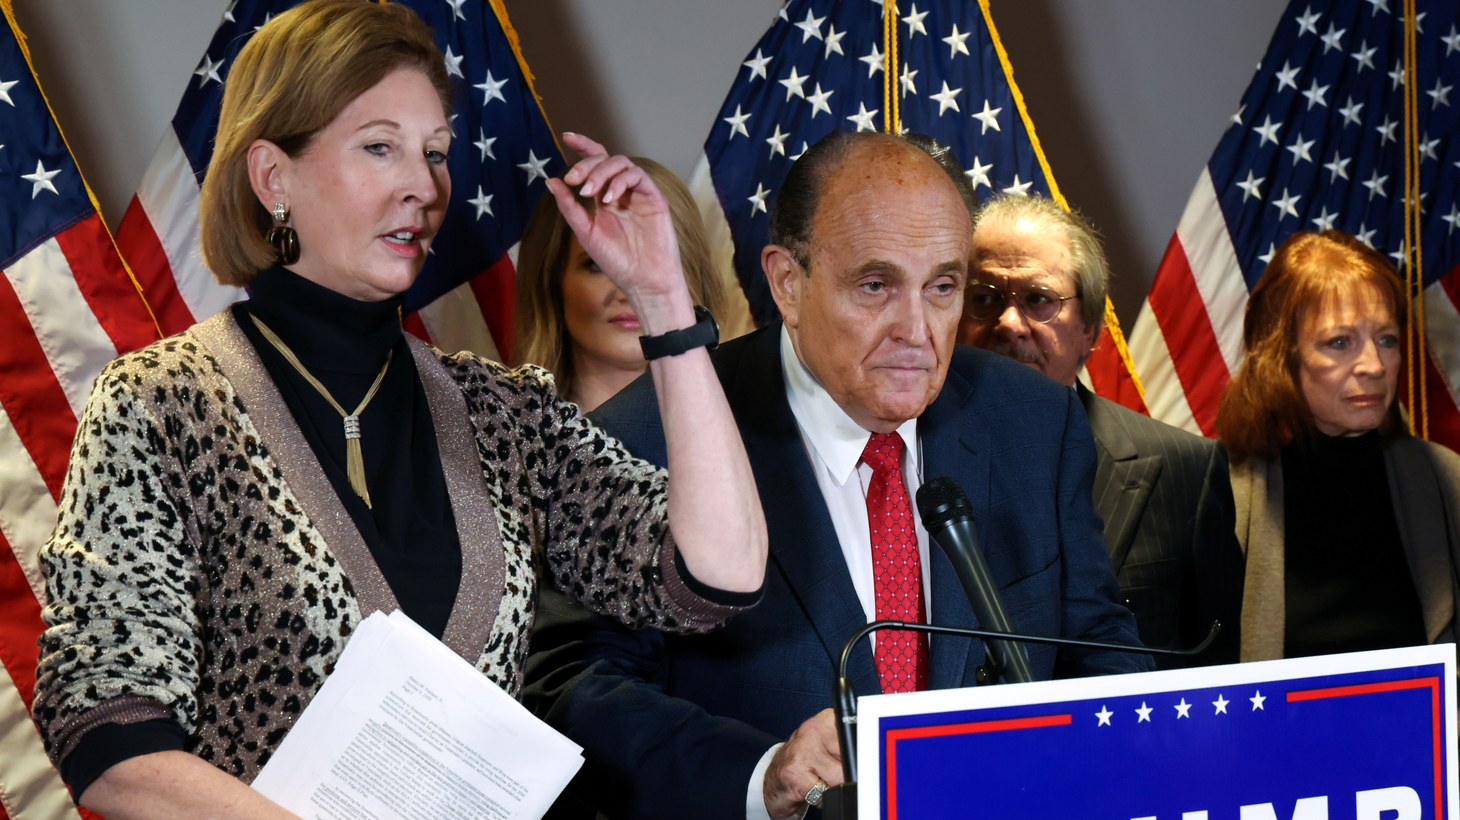 Sidney Powell, an attorney later disavowed by the Trump campaign, participates in a news conference with U.S. President Donald Trump's personal lawyer Rudy Giuliani at the Republican National Committee headquarters on Capitol Hill in Washington, U.S. November 19, 2020. Picture taken November 19, 2020.